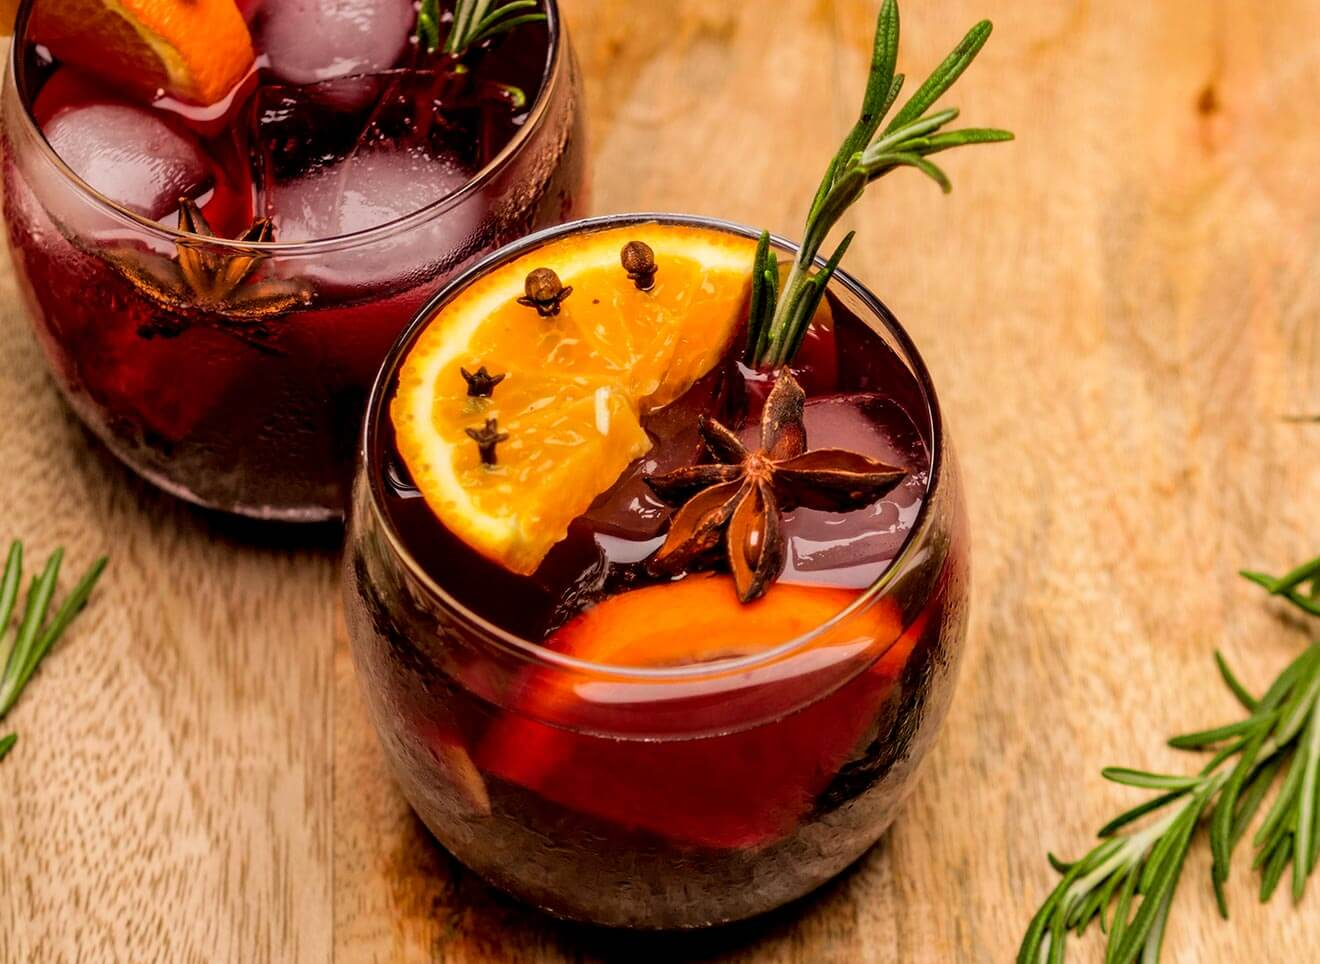 Winter Spice Sangria, cocktail with garnish